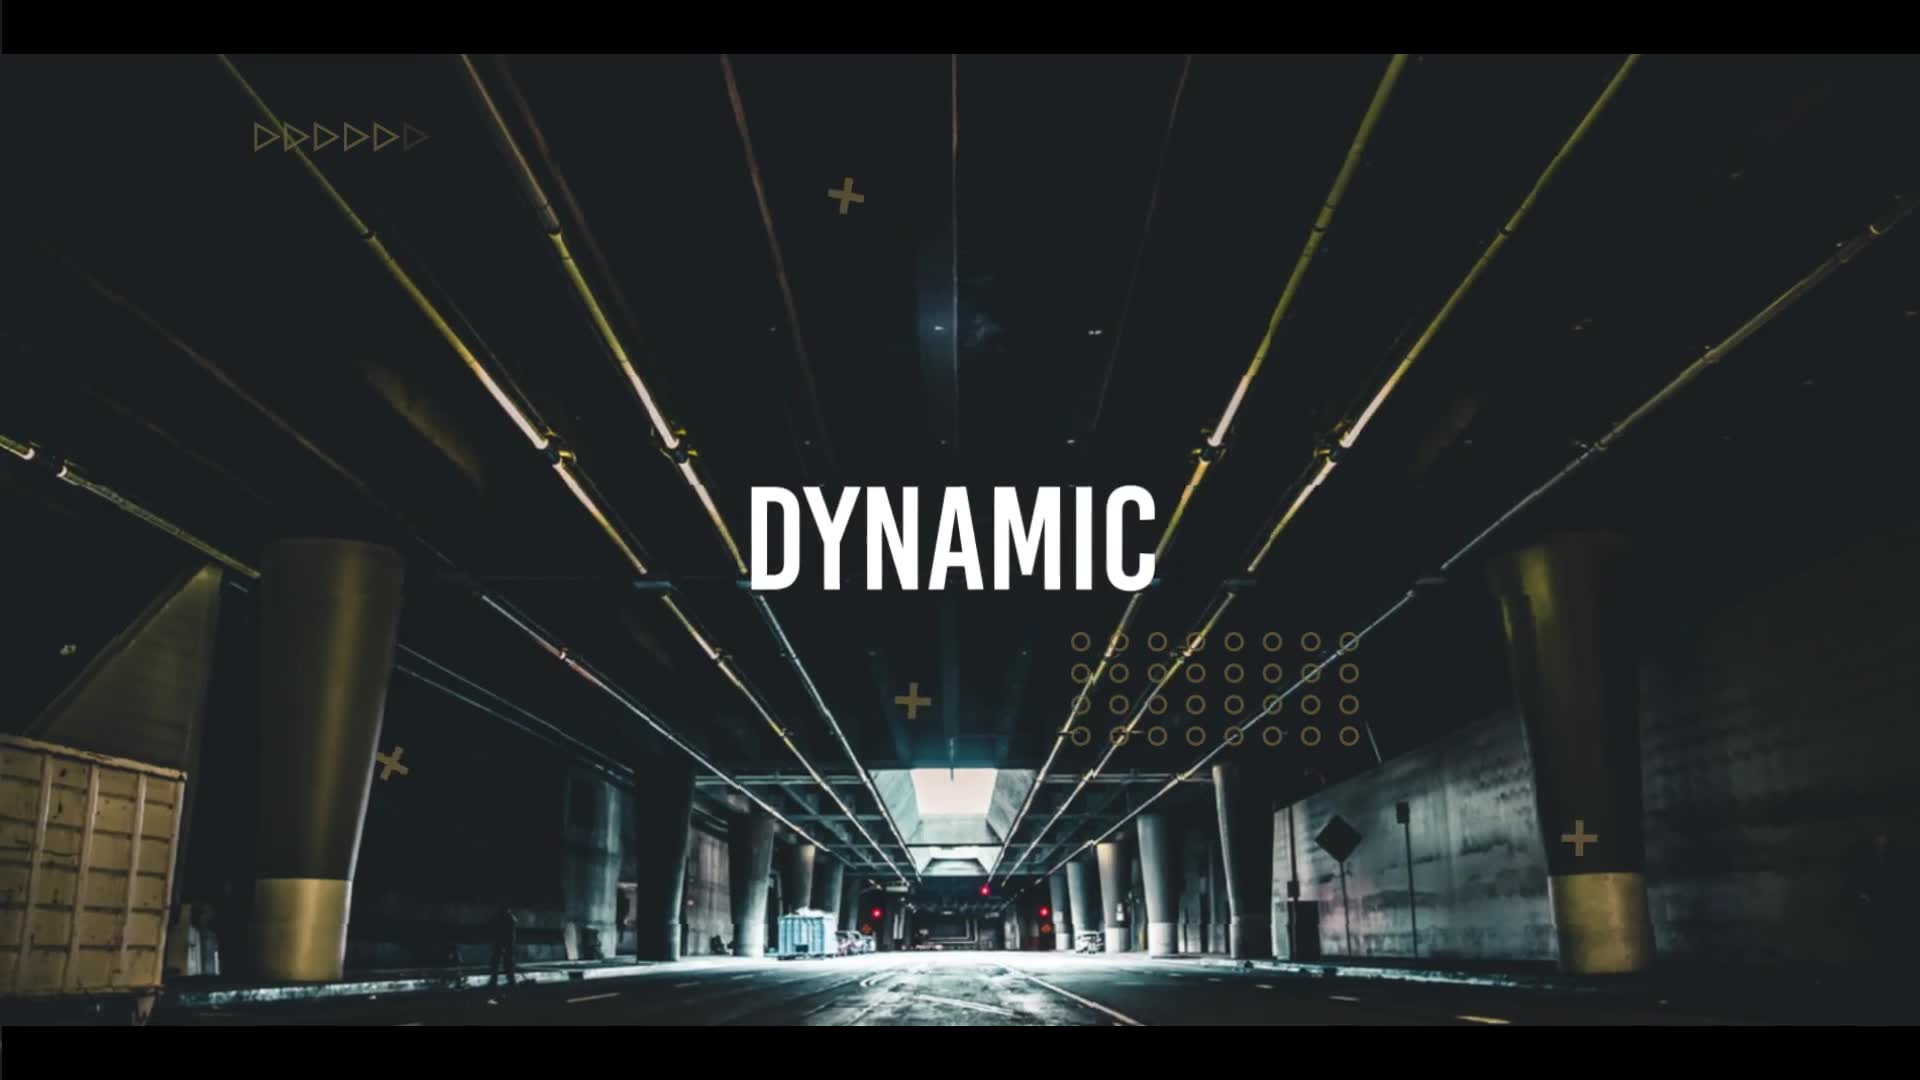 Dark Stylish Opener - Download Videohive 21849421